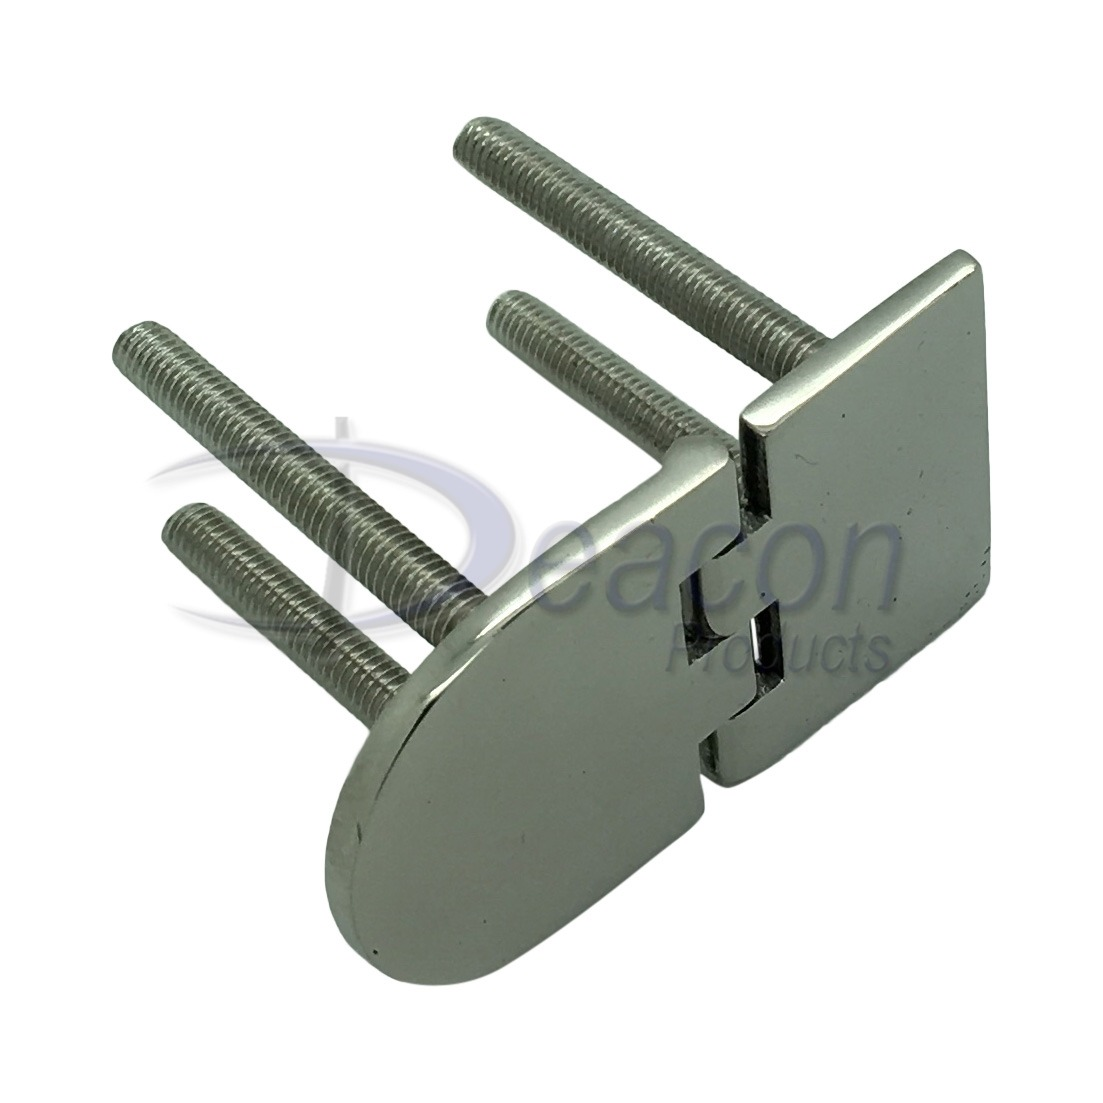 stainless-steel-small-oval-hinge-threaded-stud